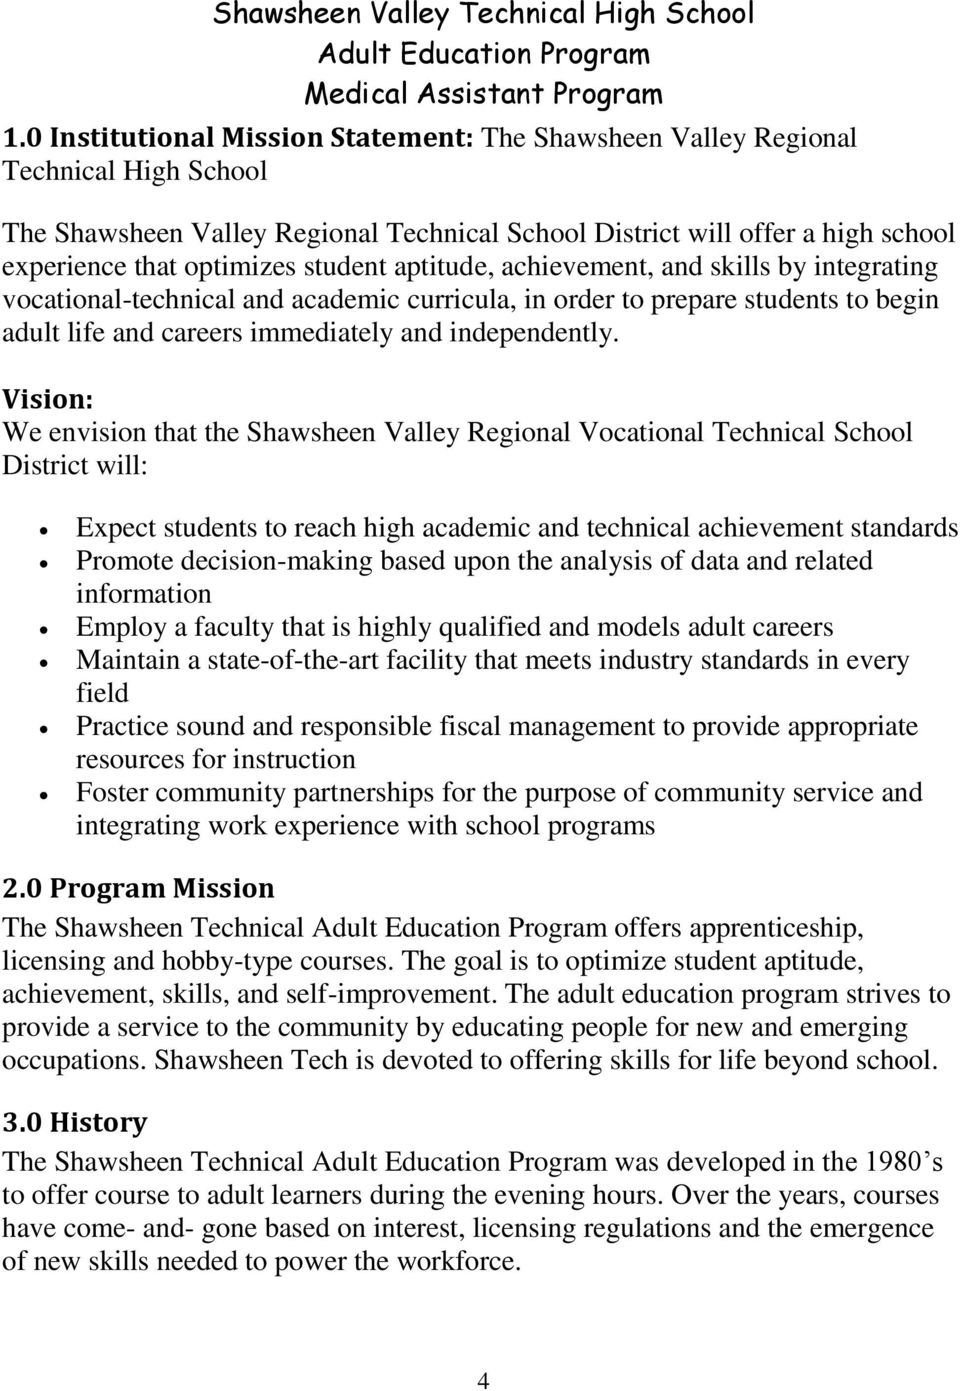 Vision: We envision that the Shawsheen Valley Regional Vocational Technical School District will: Expect students to reach high academic and technical achievement standards Promote decision-making